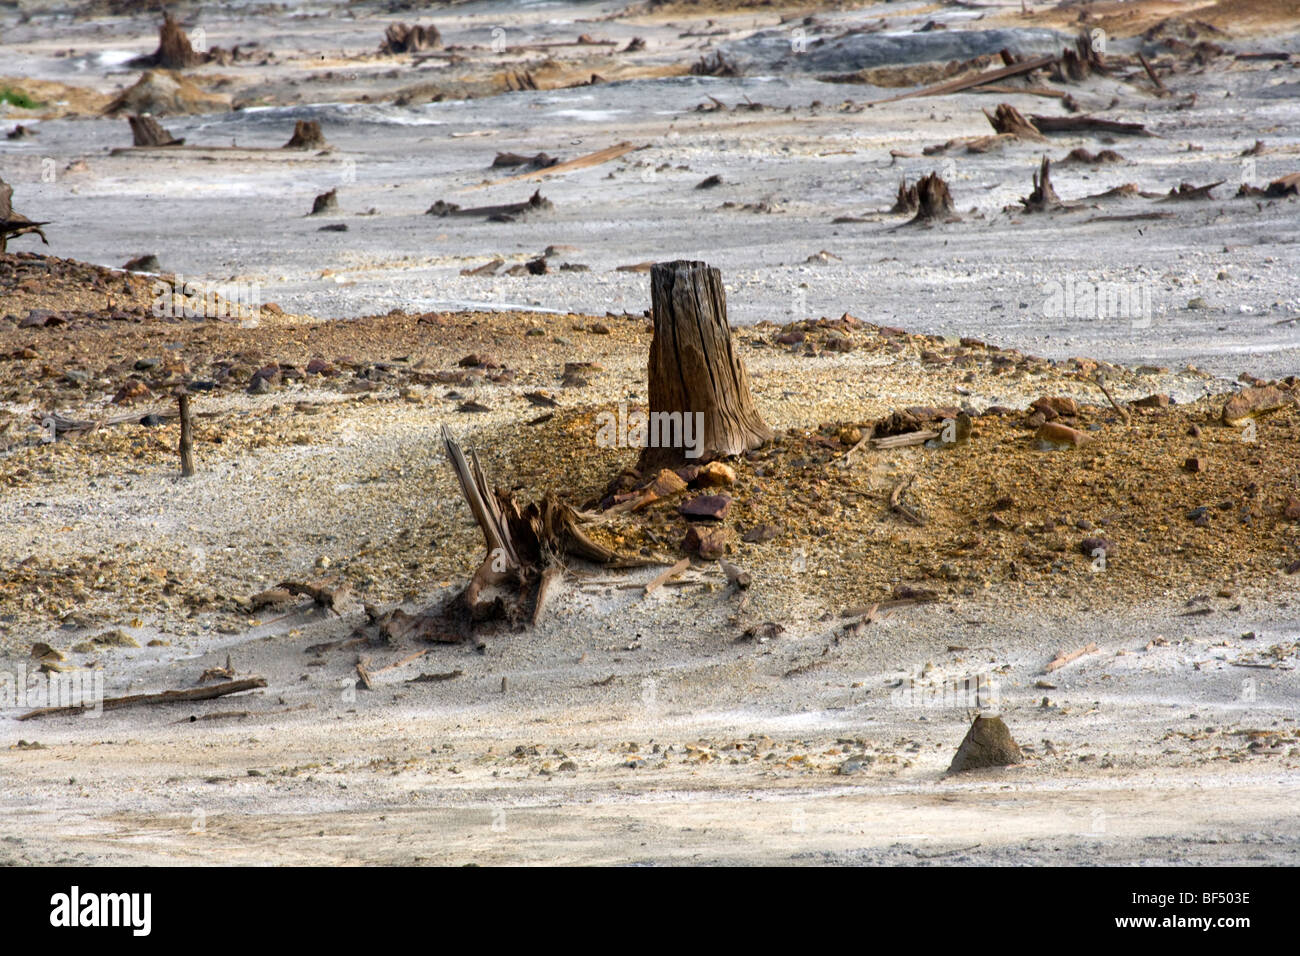 Stumps left from trees decaying from toxic industrial waste on land, Karabash, Ural, Russia - Stock Image